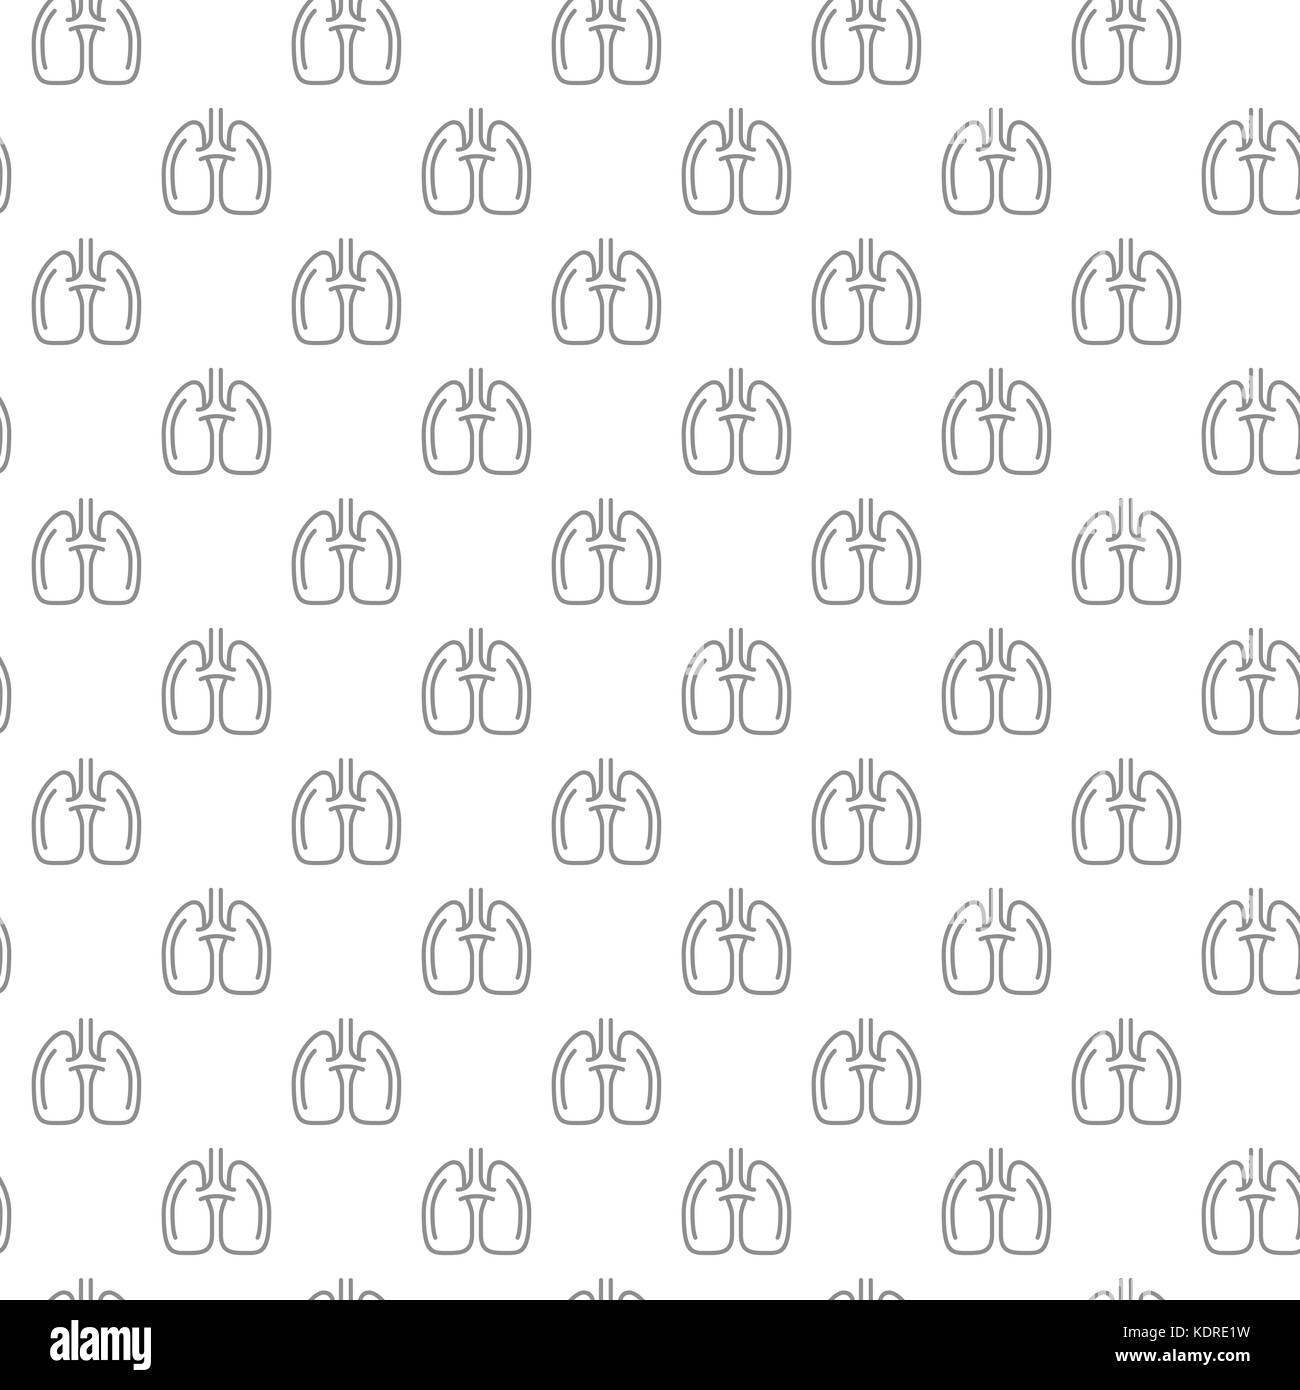 Unique lungs seamless pattern with various icons and symbols on white background flat vector illustration - Stock Image